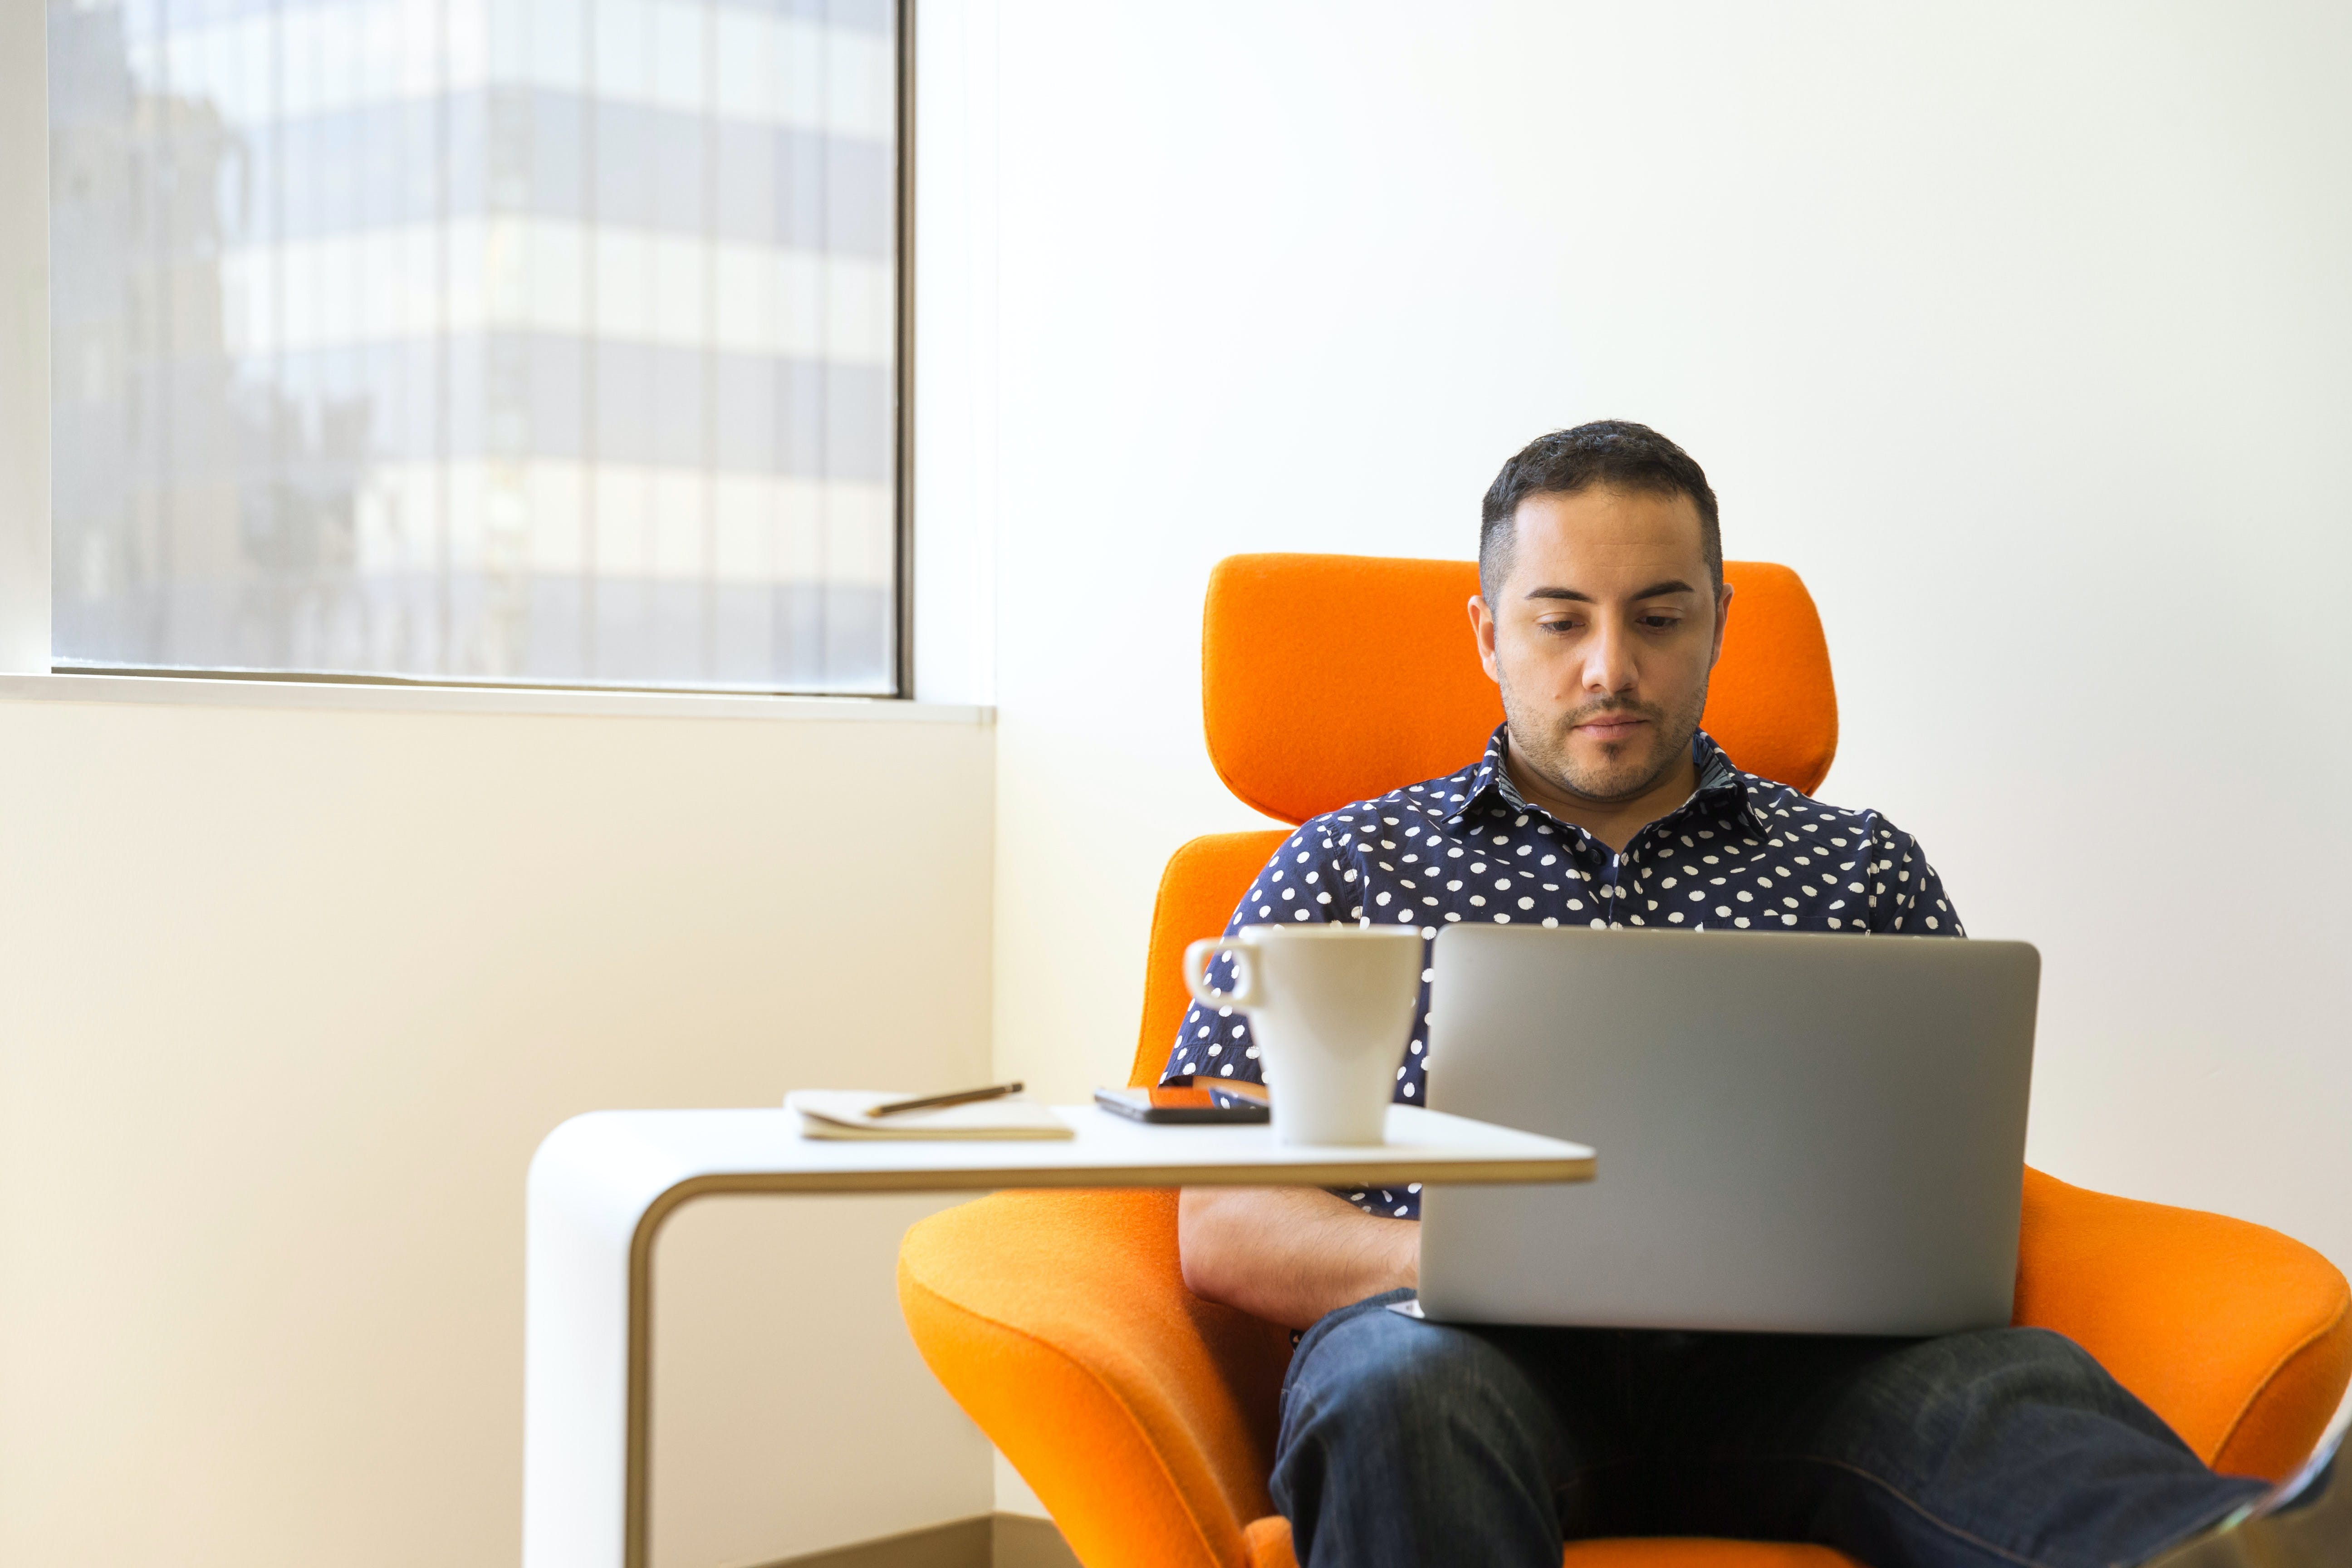 Man Sitting on Orange Sofa Chair With Gray Laptop Computer on His Lap